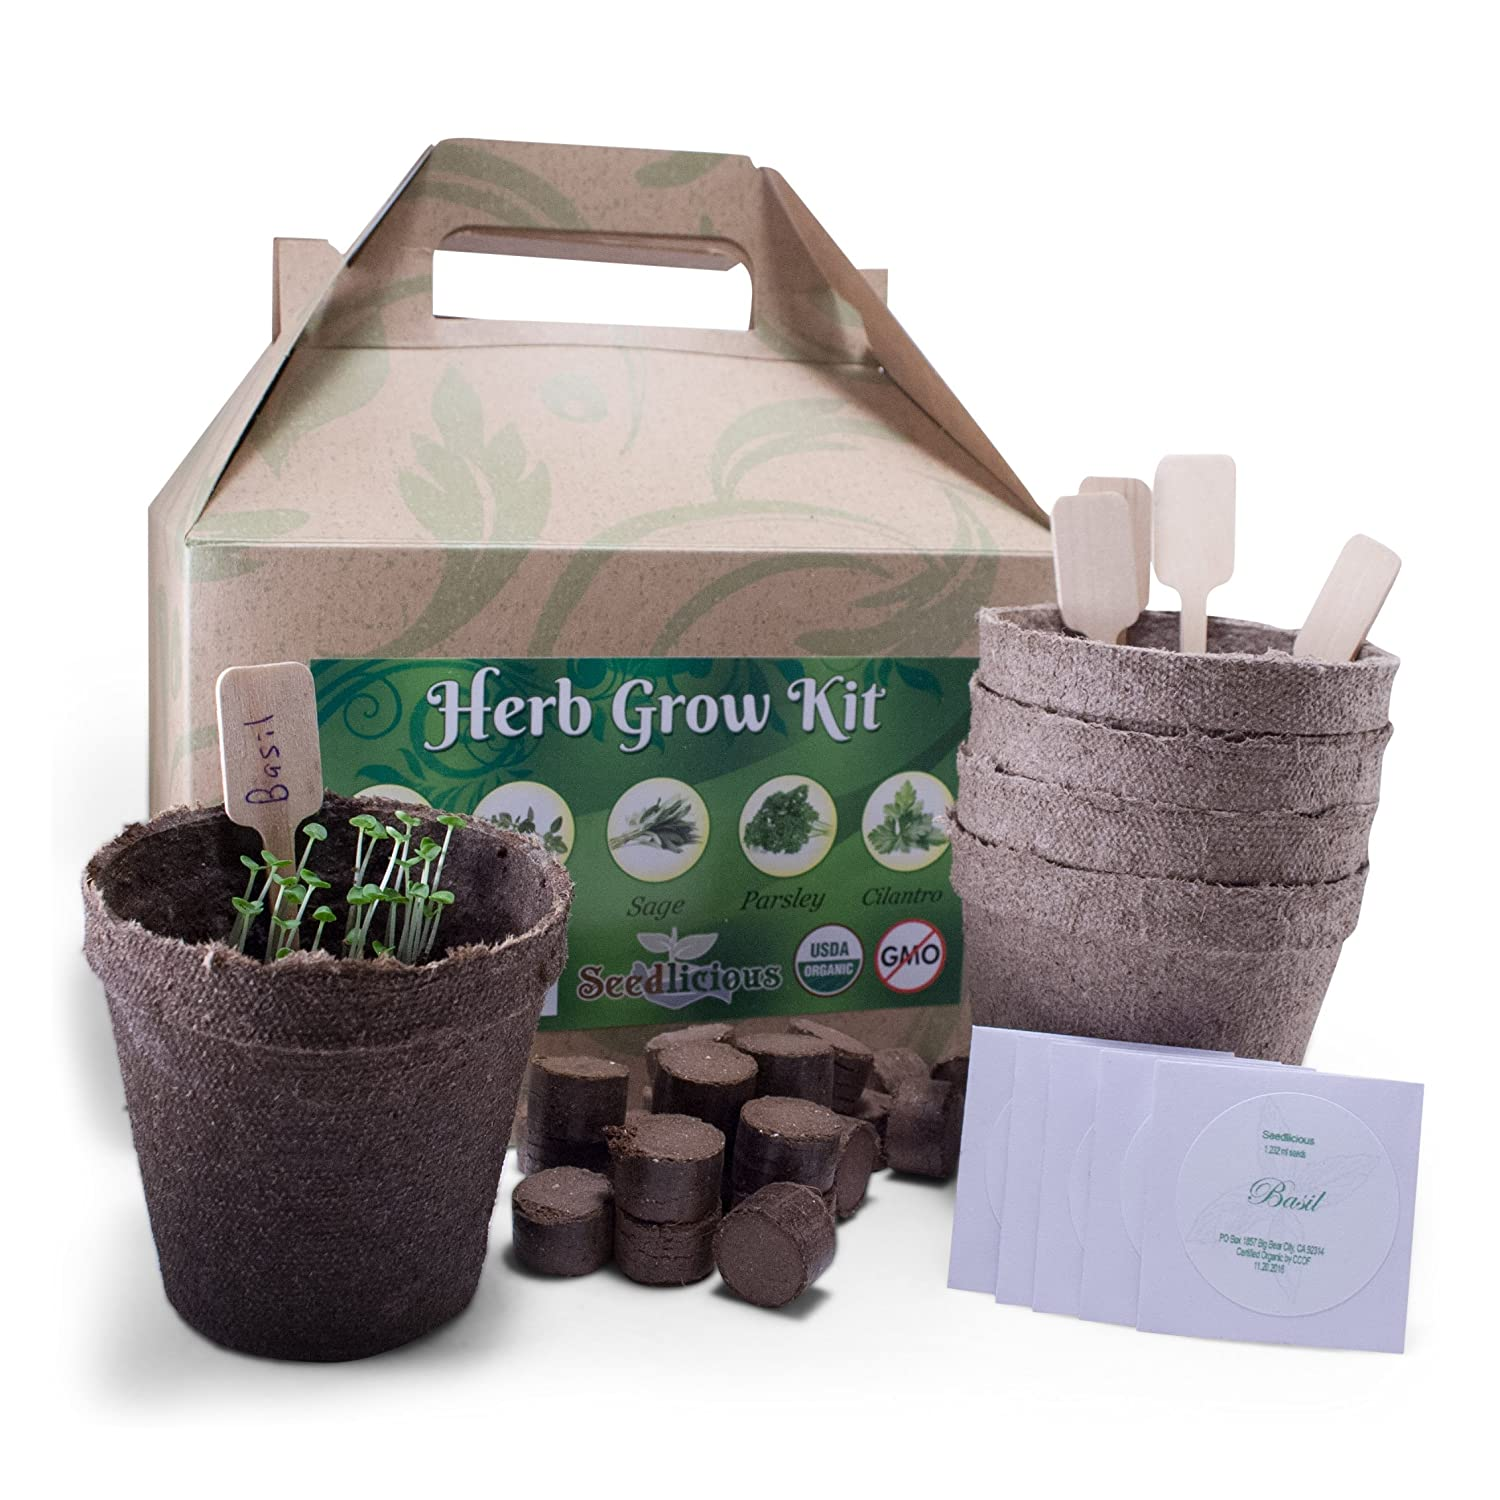 Organic 5 Herb Garden Planting Kit – Seed Starter Kit Includes Cilantro, Parsley, Thyme, Sage and Basil Plant Seeds